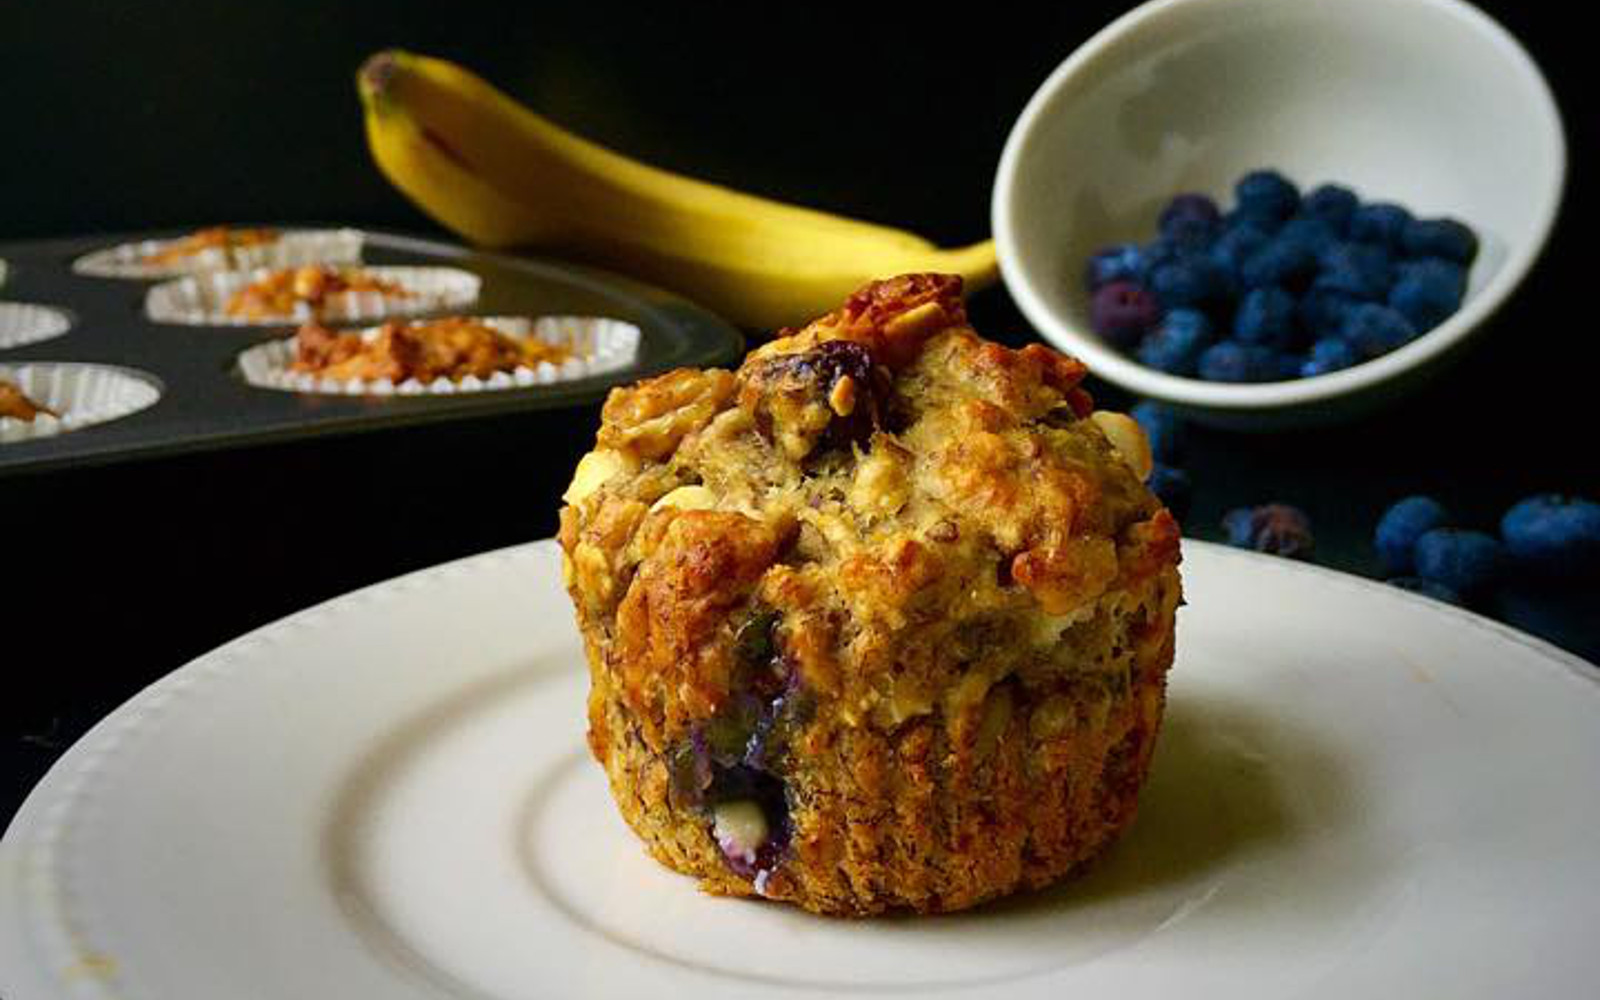 Blueberry and White Chocolate Muffins 1